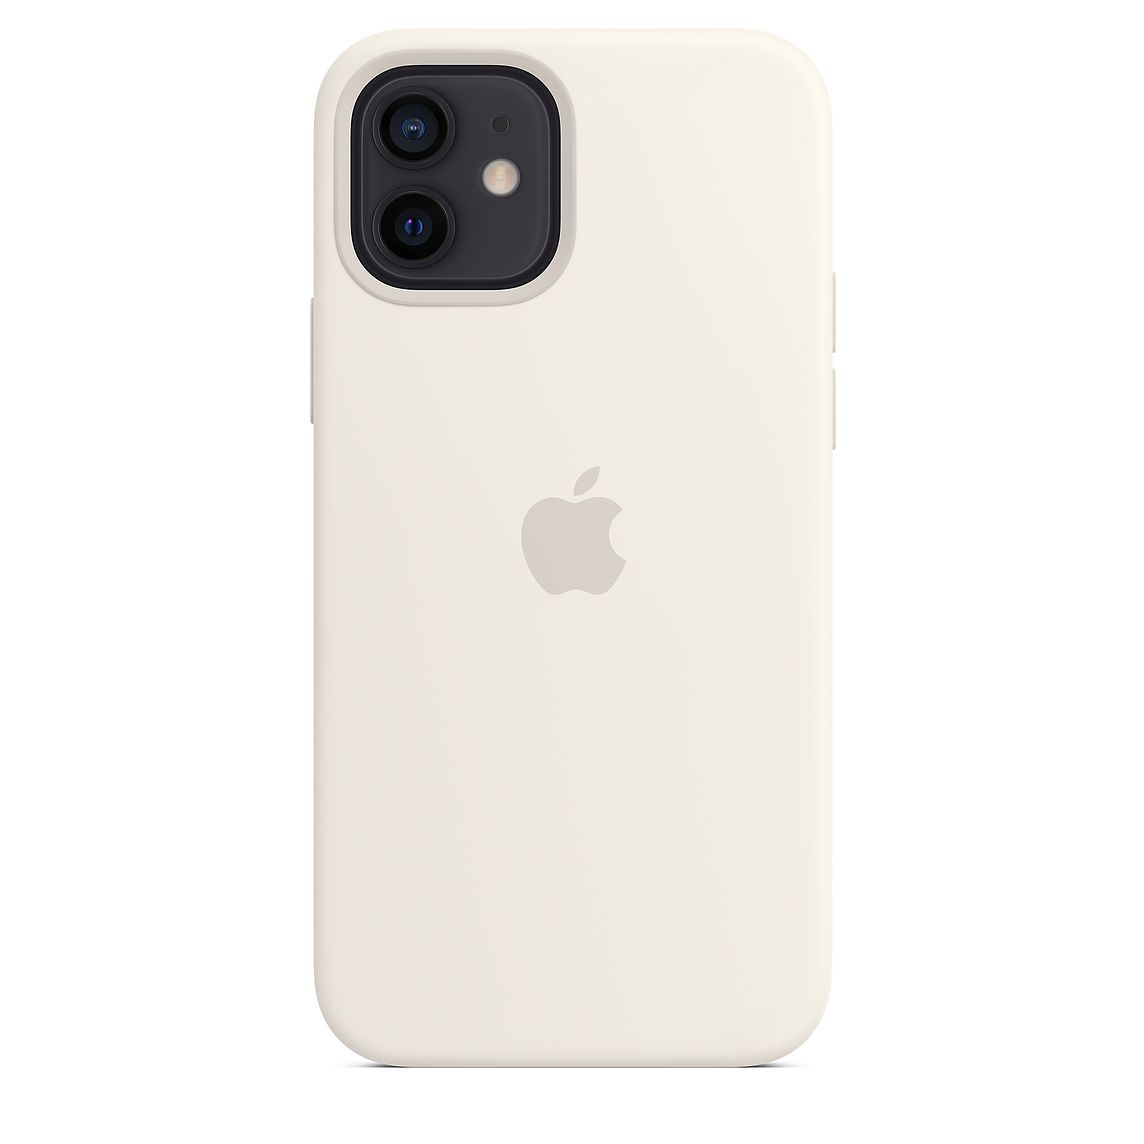 - iPhone 12 | 12 Pro Silicone Case with MagSafe / Blanco 4